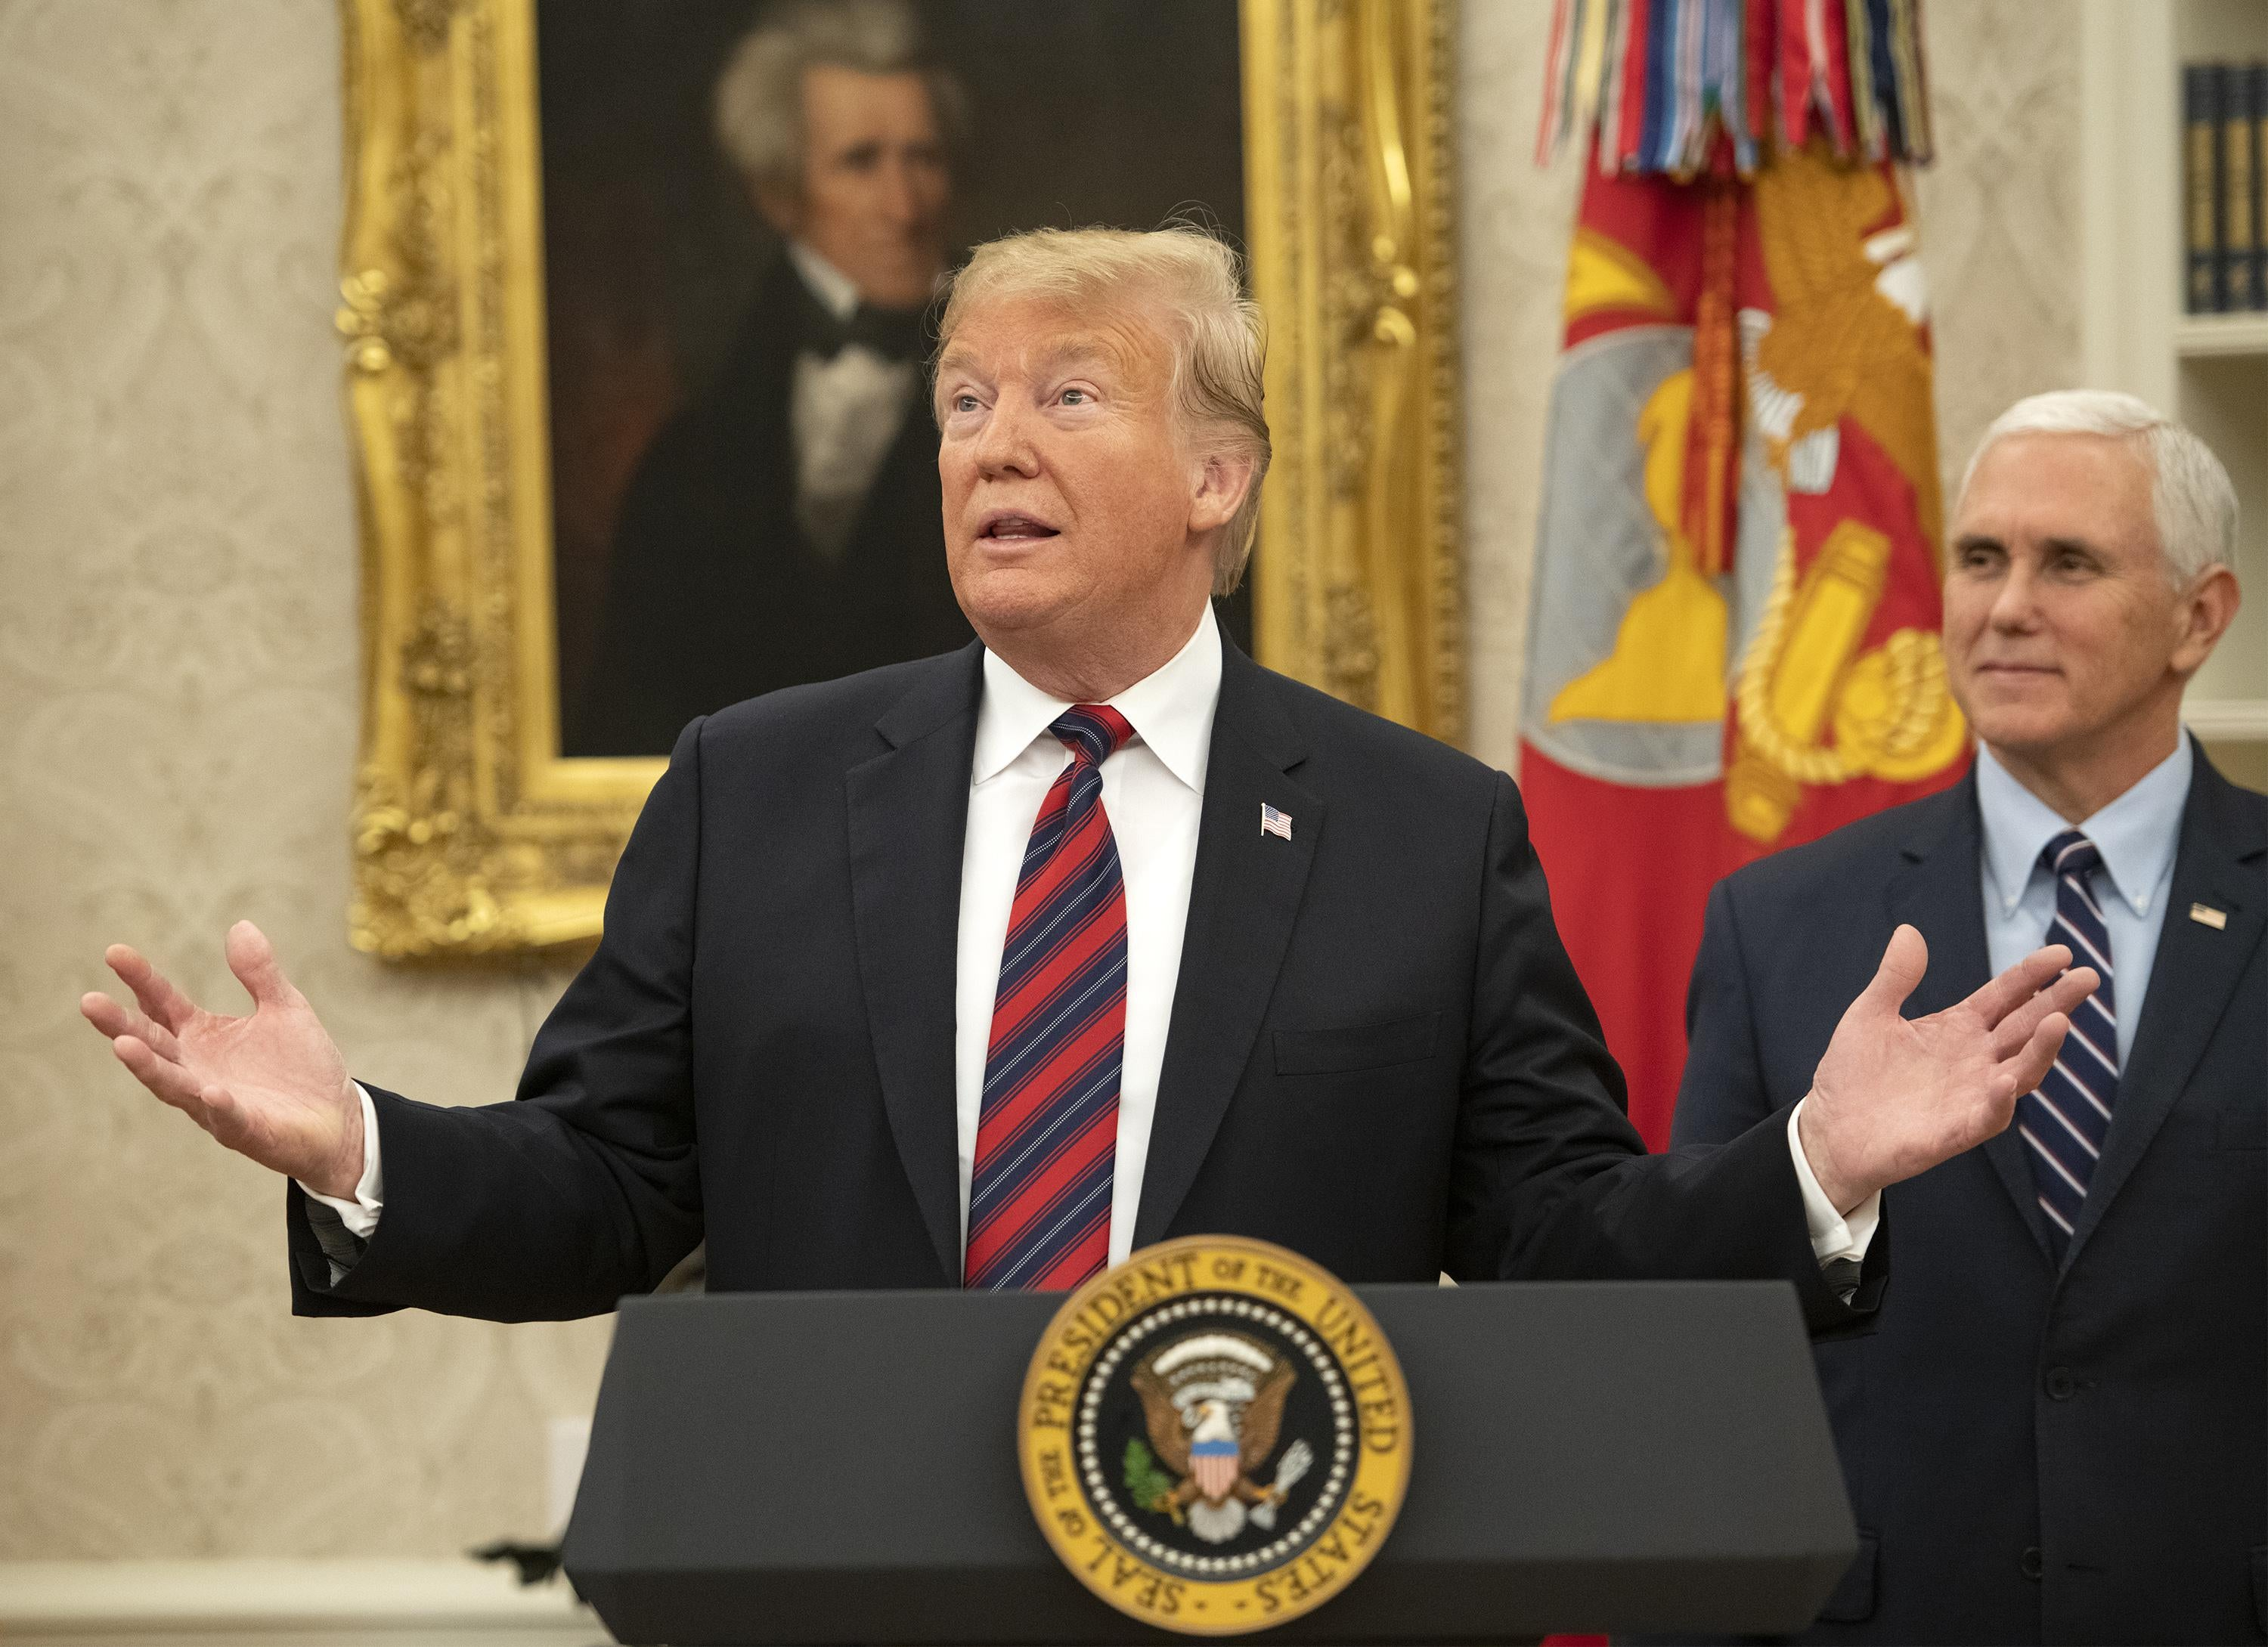 President Donald Trump makes remarks as he hosts a naturalization ceremony in the Oval Office of the White House in Washington, DC on January 19, 2019.